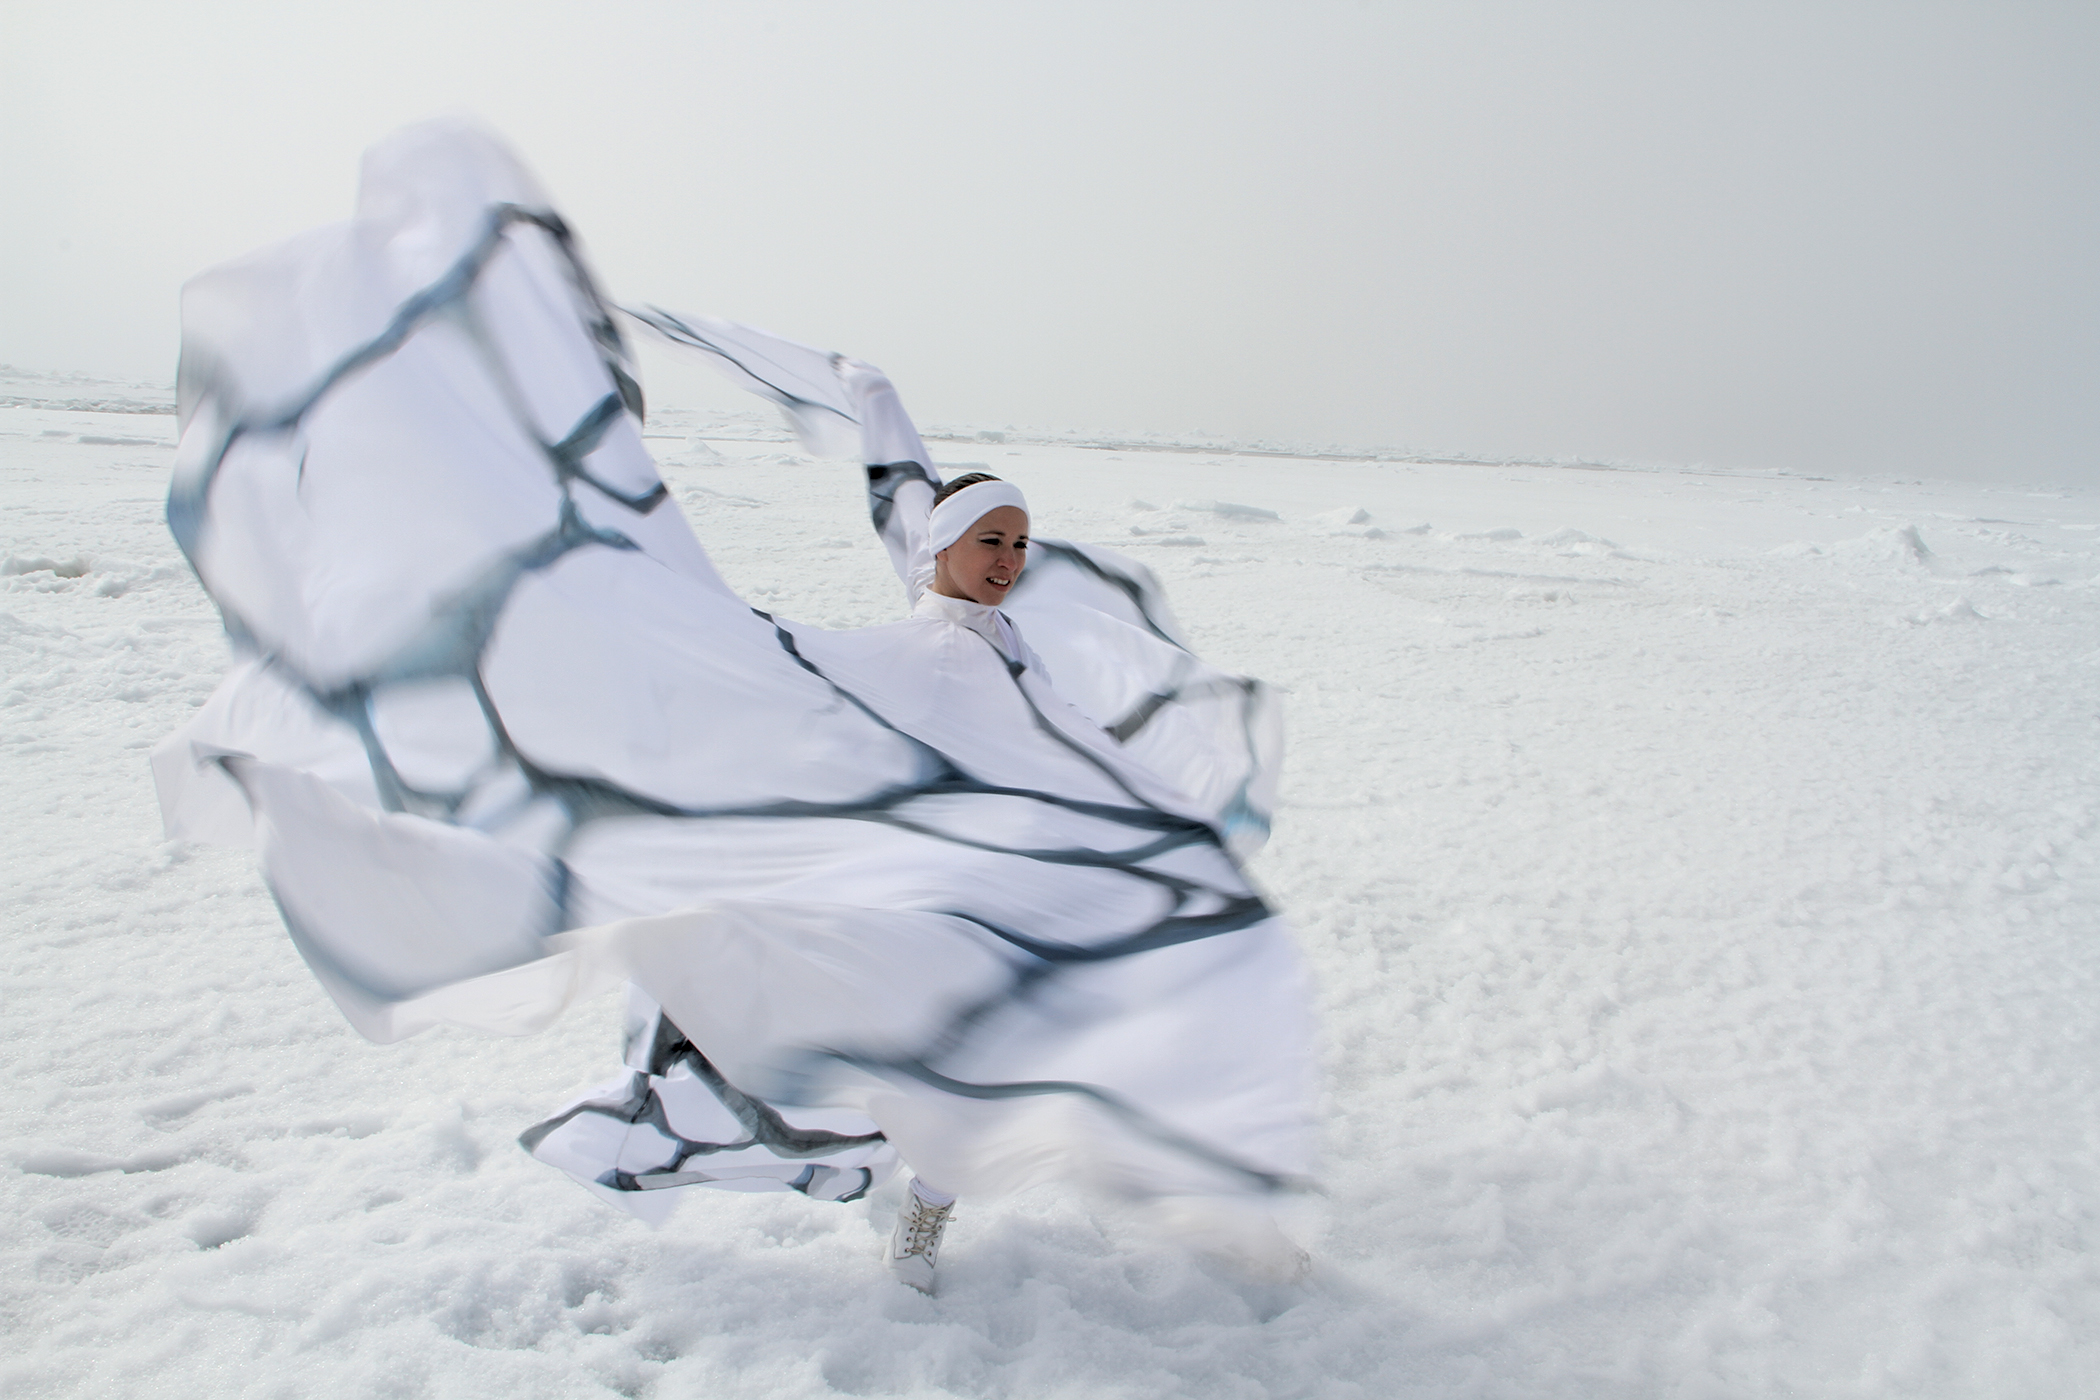 "Choreographer Jody Sperling '92 traveled to the Arctic Ocean to create her pieces on climate change. Her ""Ice Flow"" video captures the experience. Upcoming dance pieces and collaborations will explore the environmental questions further. See timelapsedance.com for more information and listings. Photo: Pierre Coupel"